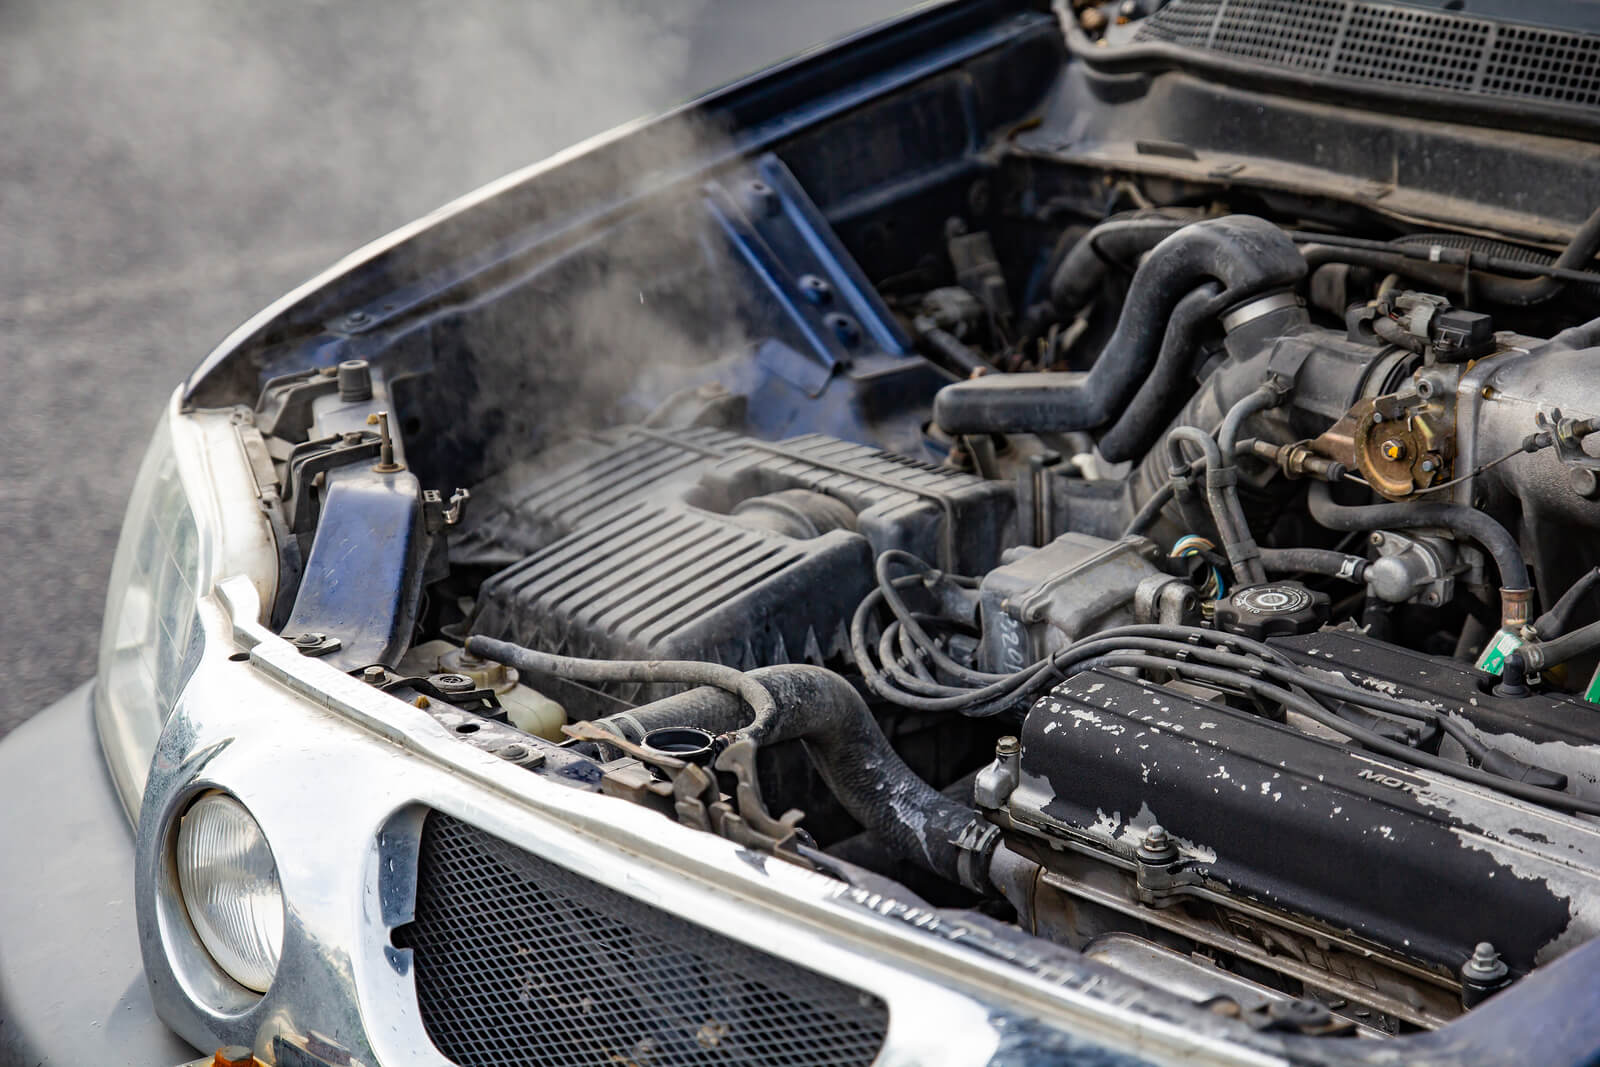 overheated car engine with lack of engine oil to lubricate moving parts